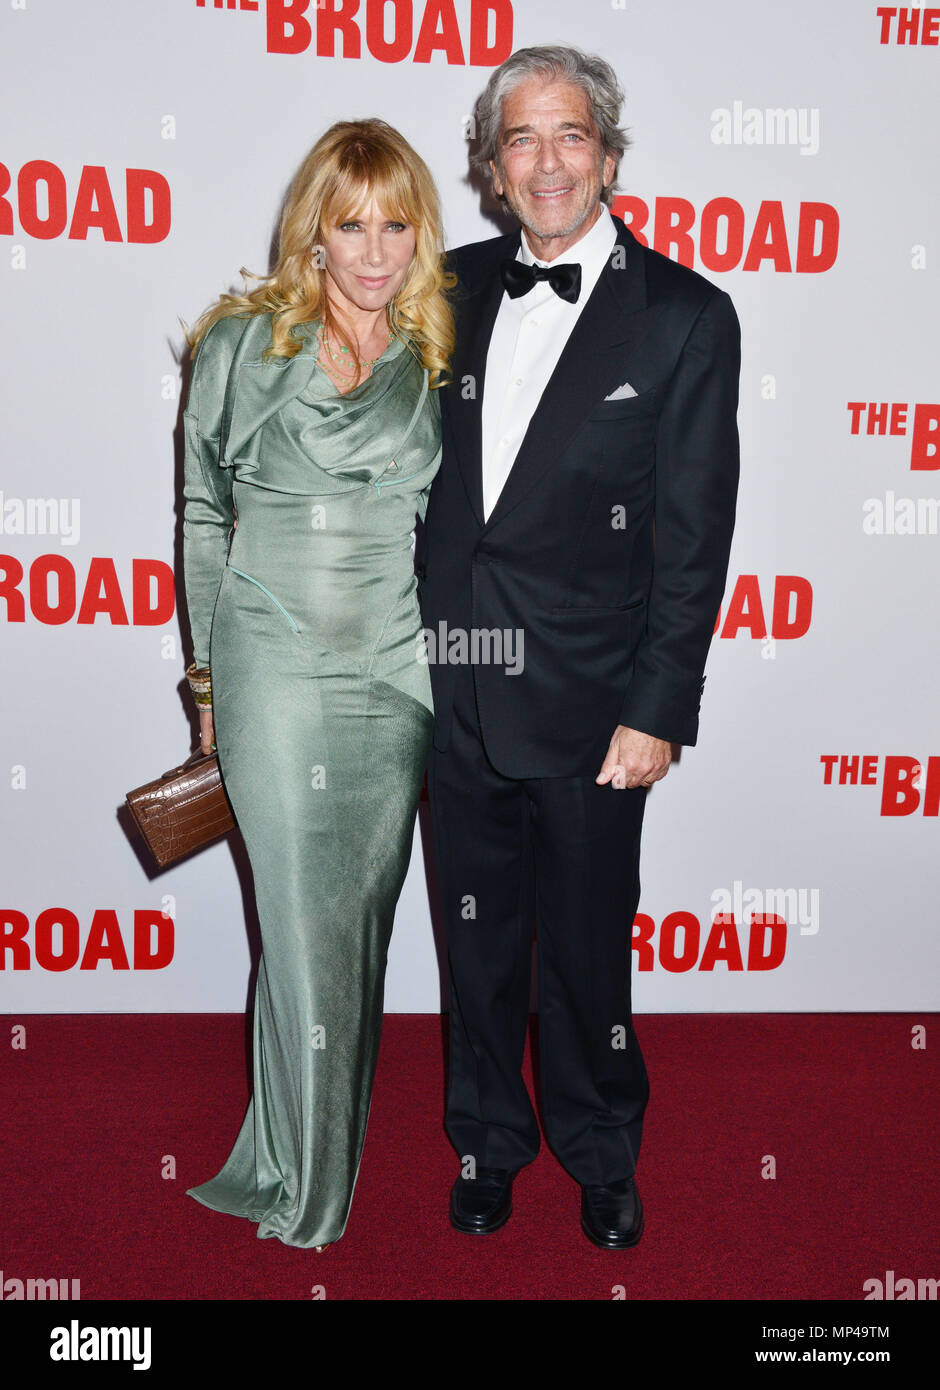 Rosanna Arquette 200 at The Broad Museum Opening and Inaugural Dinner at the Broad Museum in Los Angeles. September 17, 2015.Rosanna Arquette 200 ------------- Red Carpet Event, Vertical, USA, Film Industry, Celebrities,  Photography, Bestof, Arts Culture and Entertainment, Topix Celebrities fashion /  Vertical, Best of, Event in Hollywood Life - California,  Red Carpet and backstage, USA, Film Industry, Celebrities,  movie celebrities, TV celebrities, Music celebrities, Photography, Bestof, Arts Culture and Entertainment,  Topix, vertical,  family from from the year , 2015, inquiry tsuni@Gamm - Stock Image